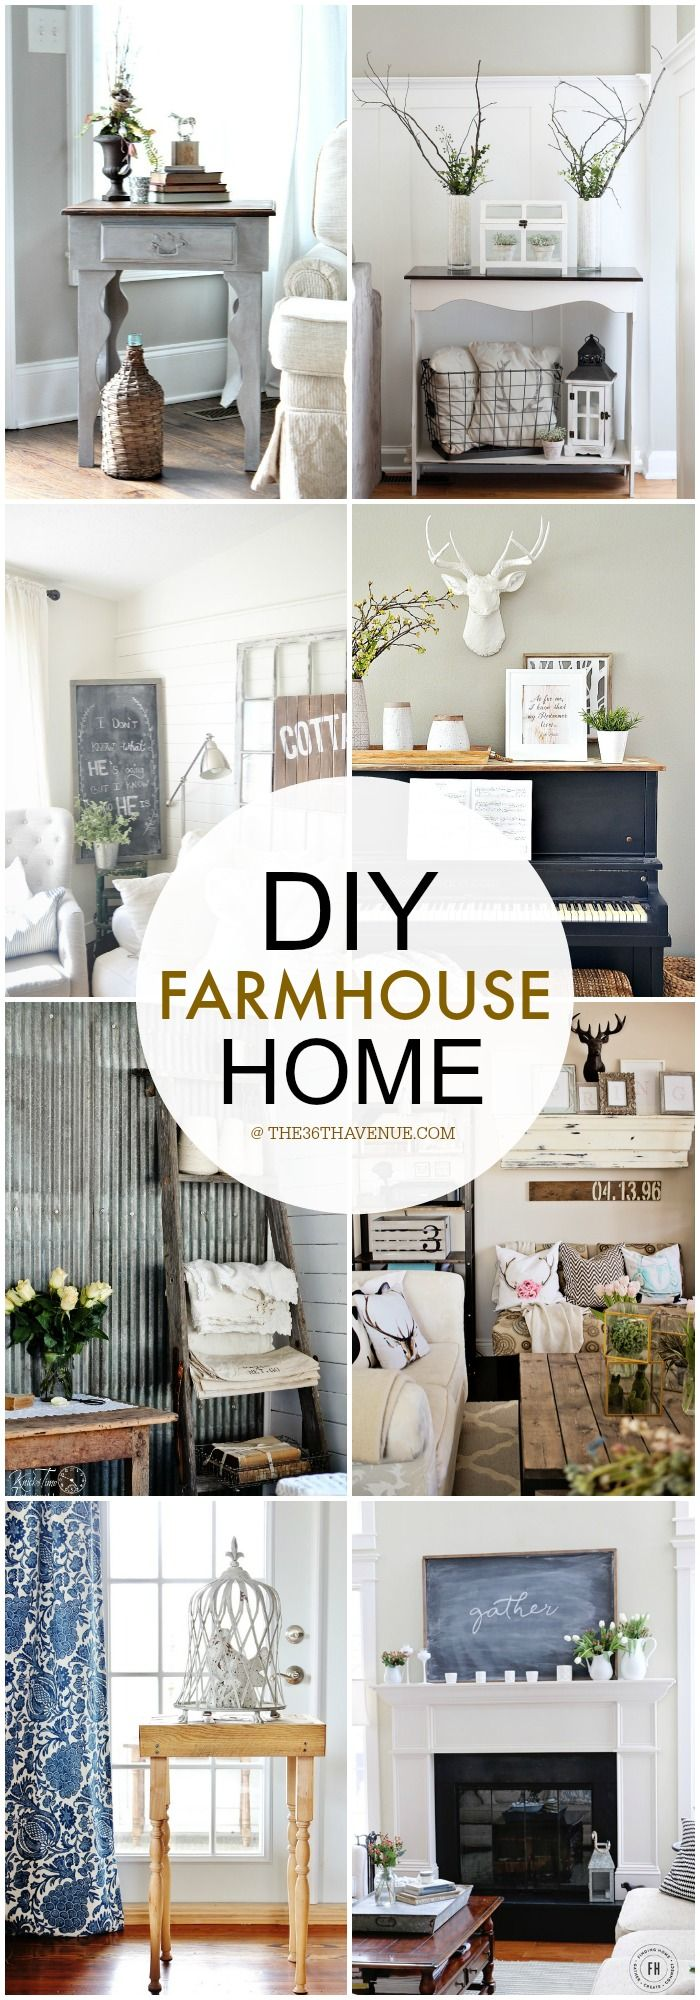 DIY Home Decor - Love these farmhouse decor ideas. Home decor ideas!